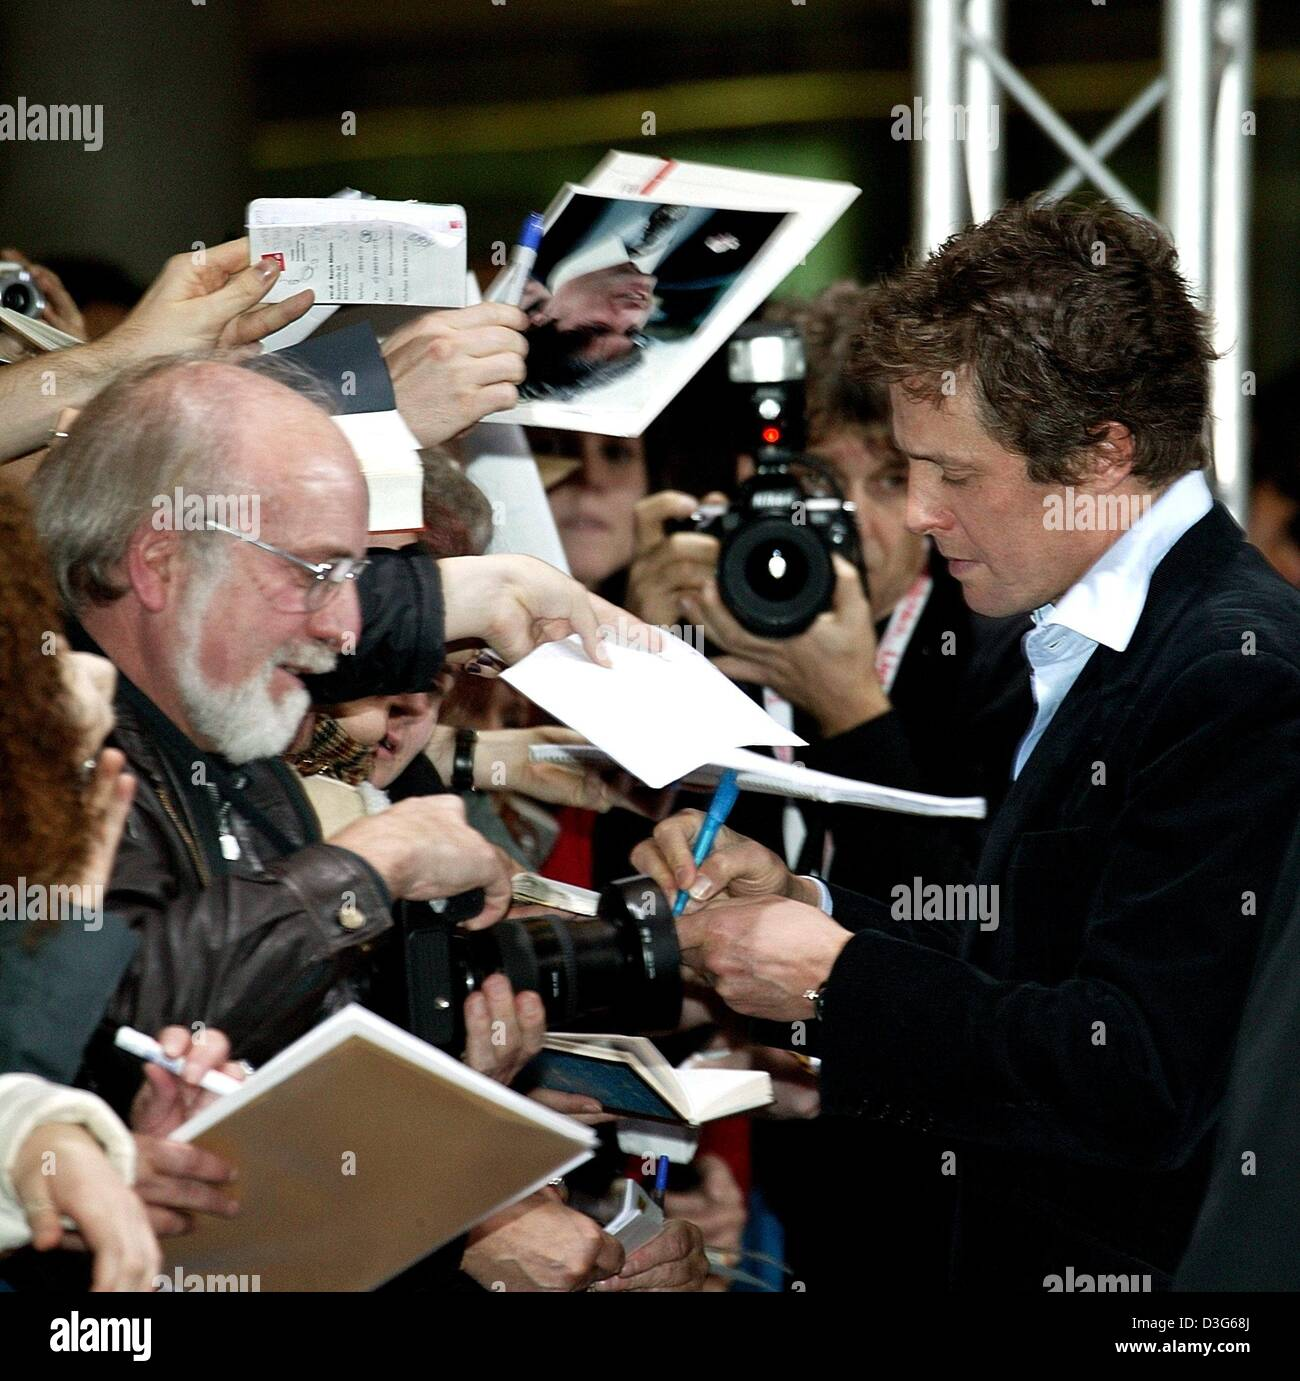 (dpa) - British actor Hugh Grant signs autographs ahead of the German premiere of his film 'Love Actually' - Stock Image